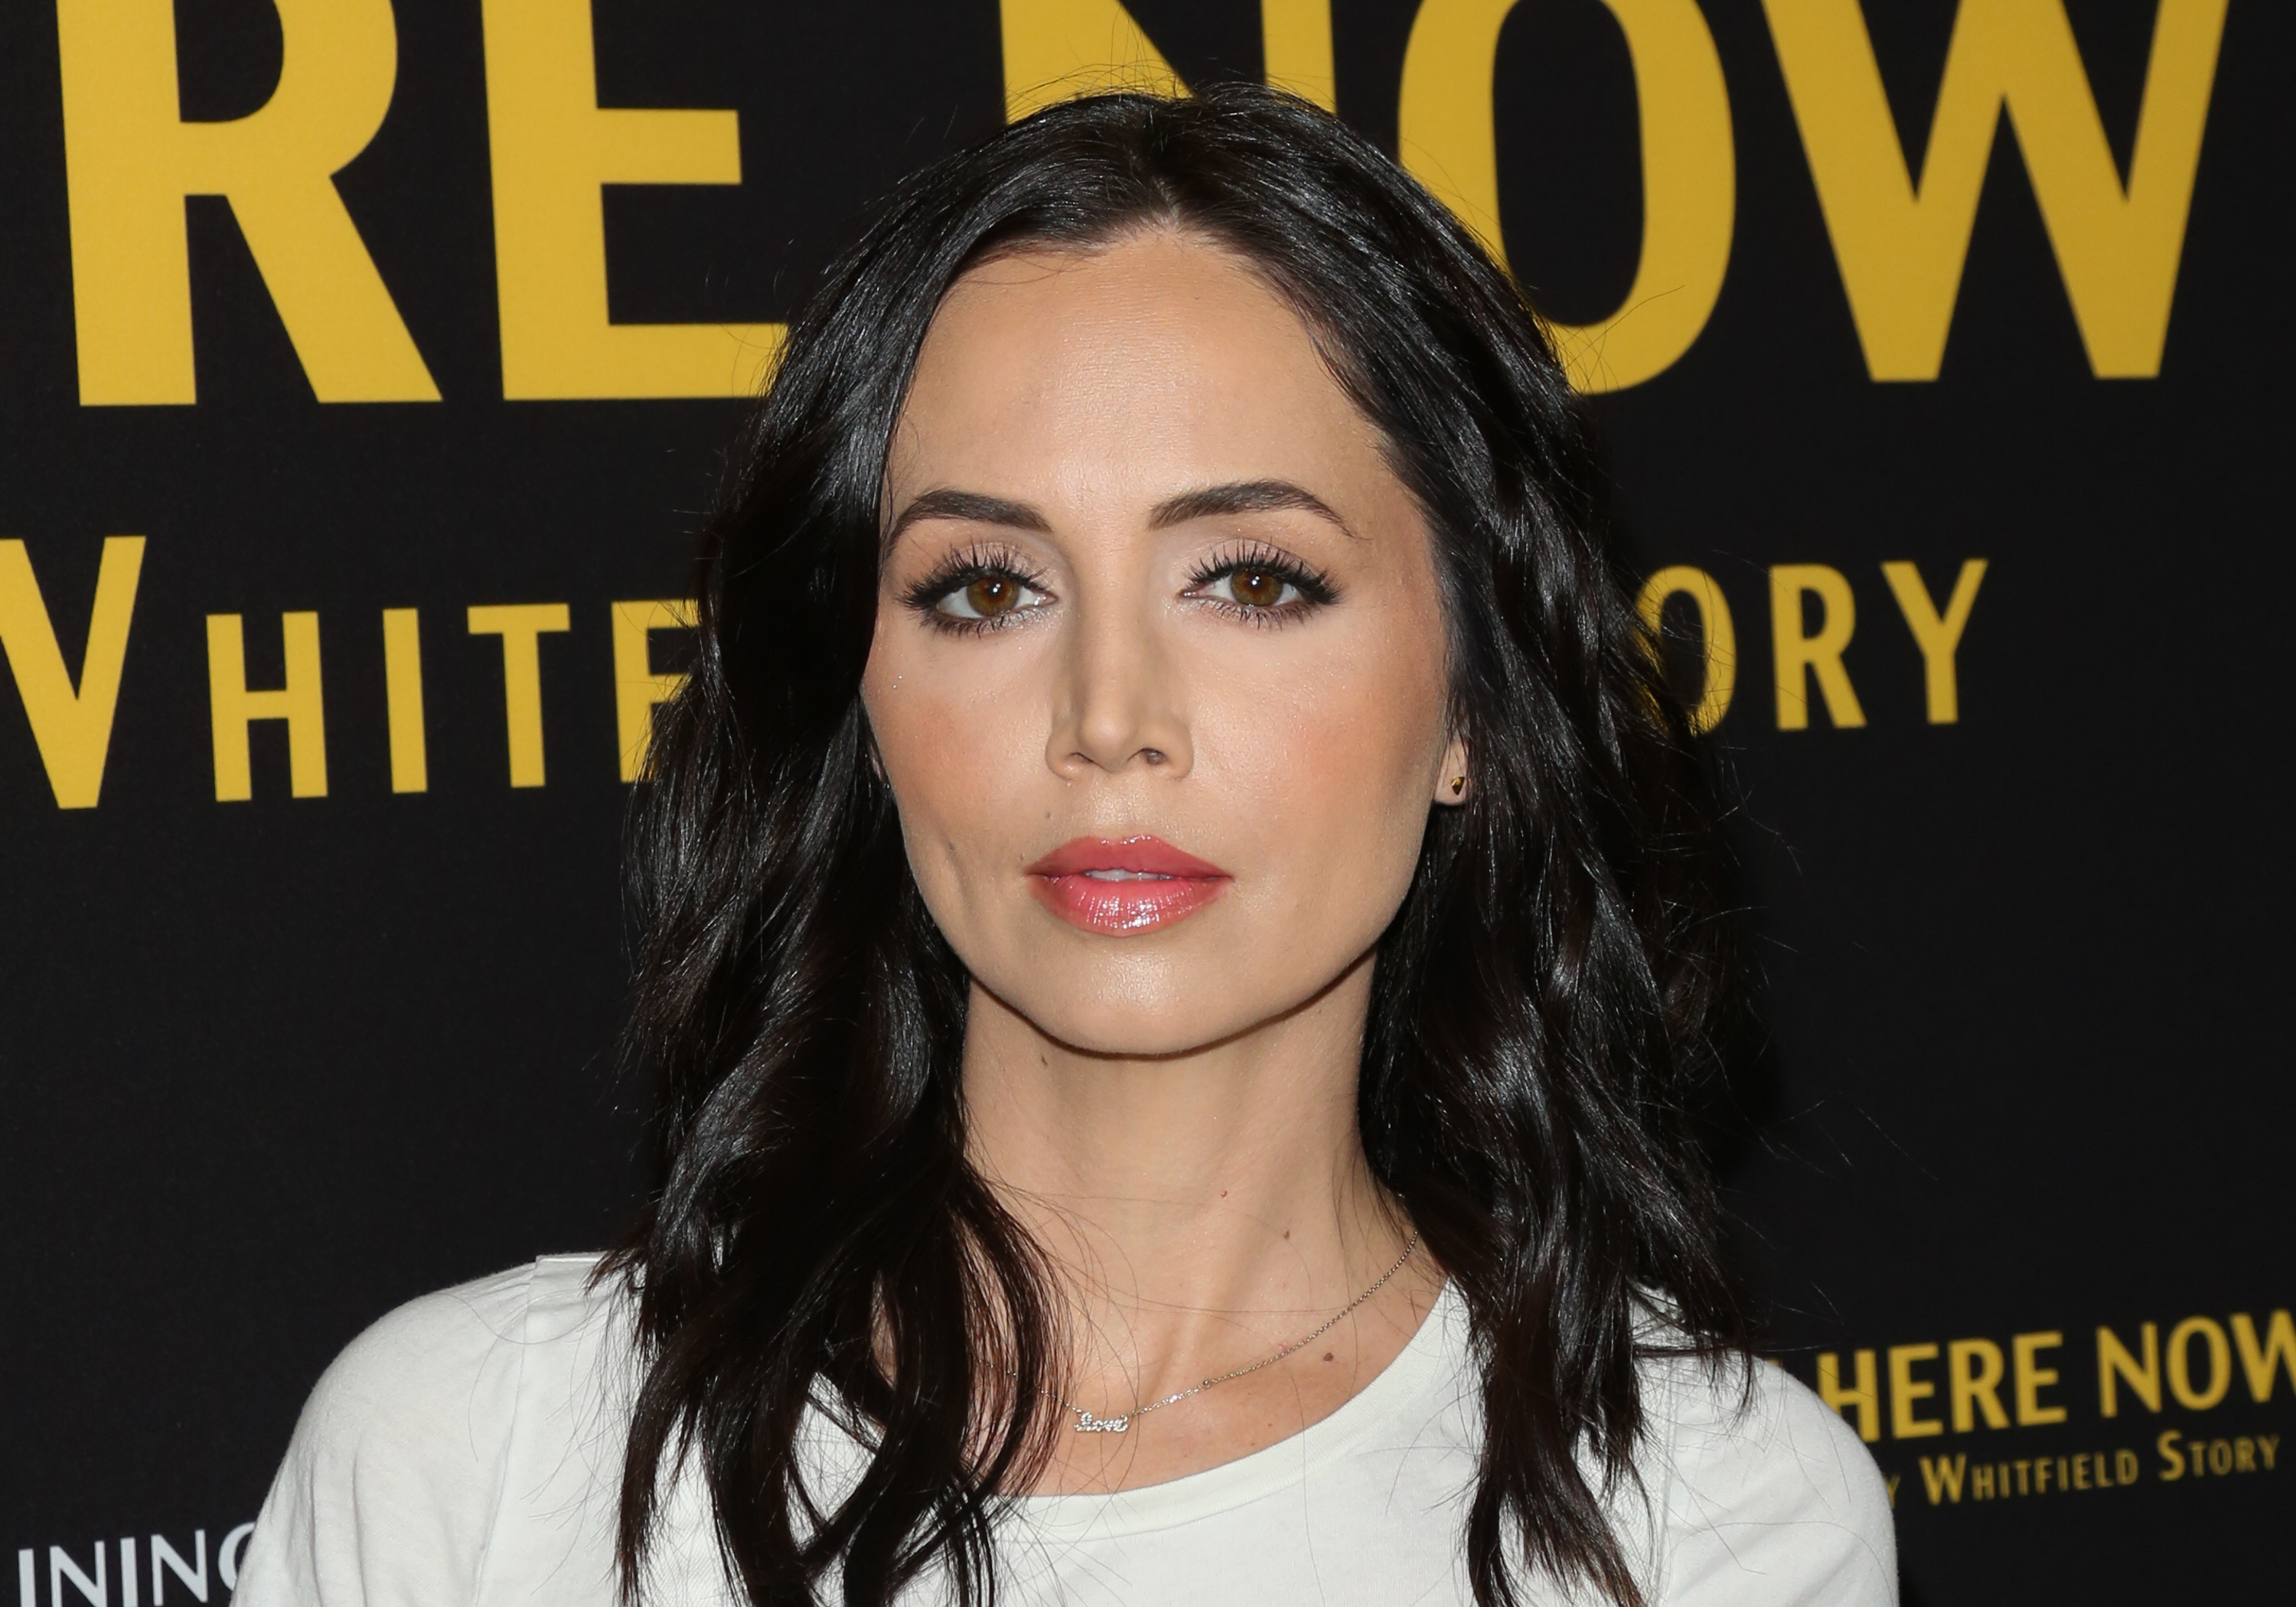 Eliza Dushku broke her silence about her sexual harassment settlement with CBS